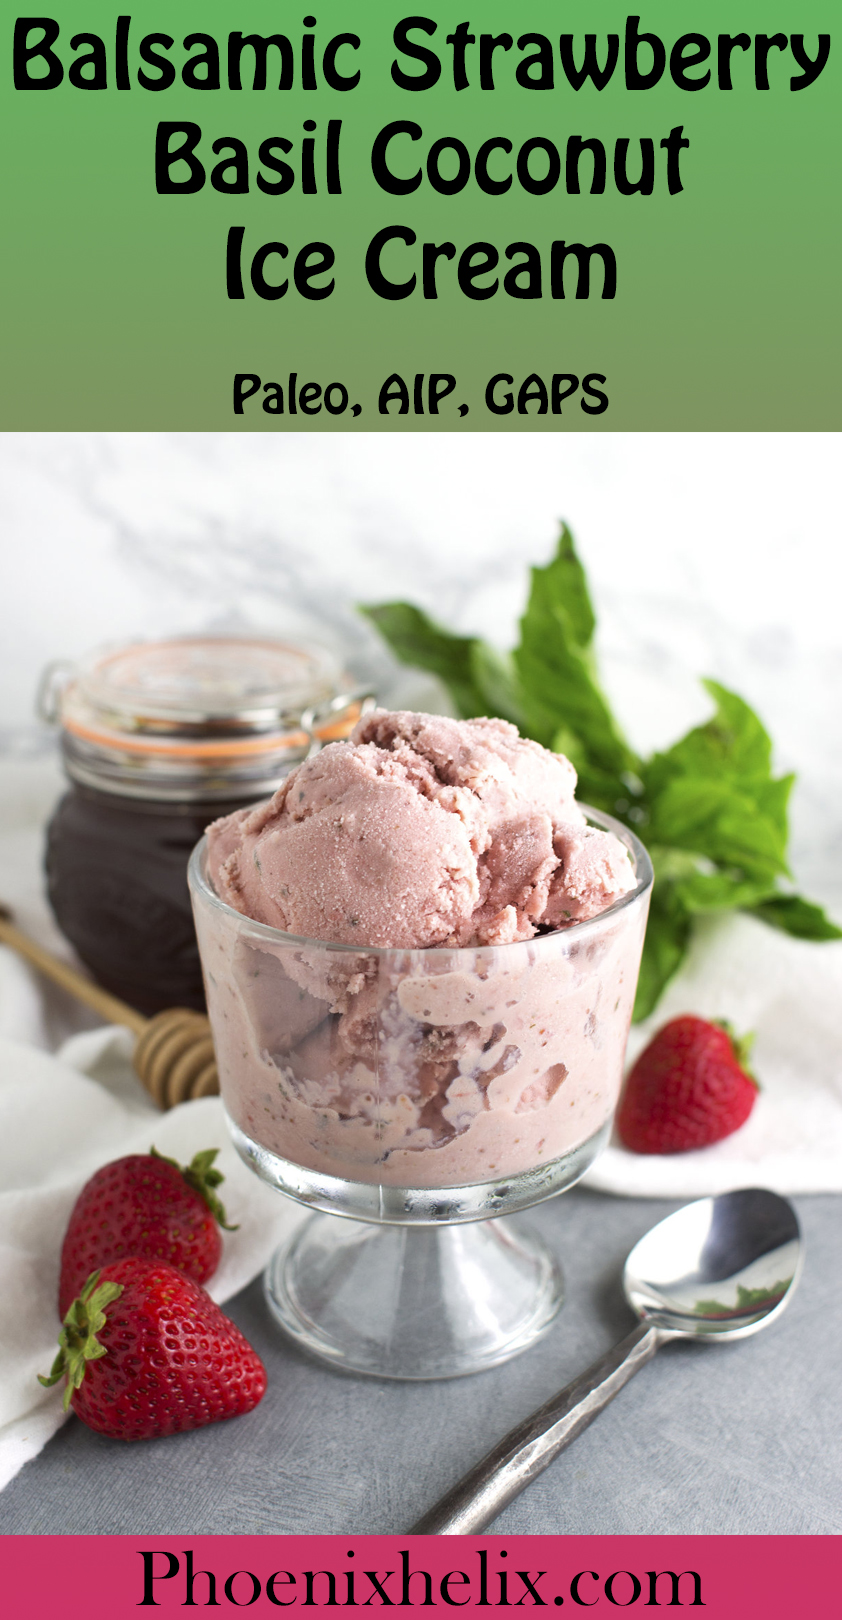 Balsamic Strawberry Basil Coconut Ice Cream | Phoenix Helix